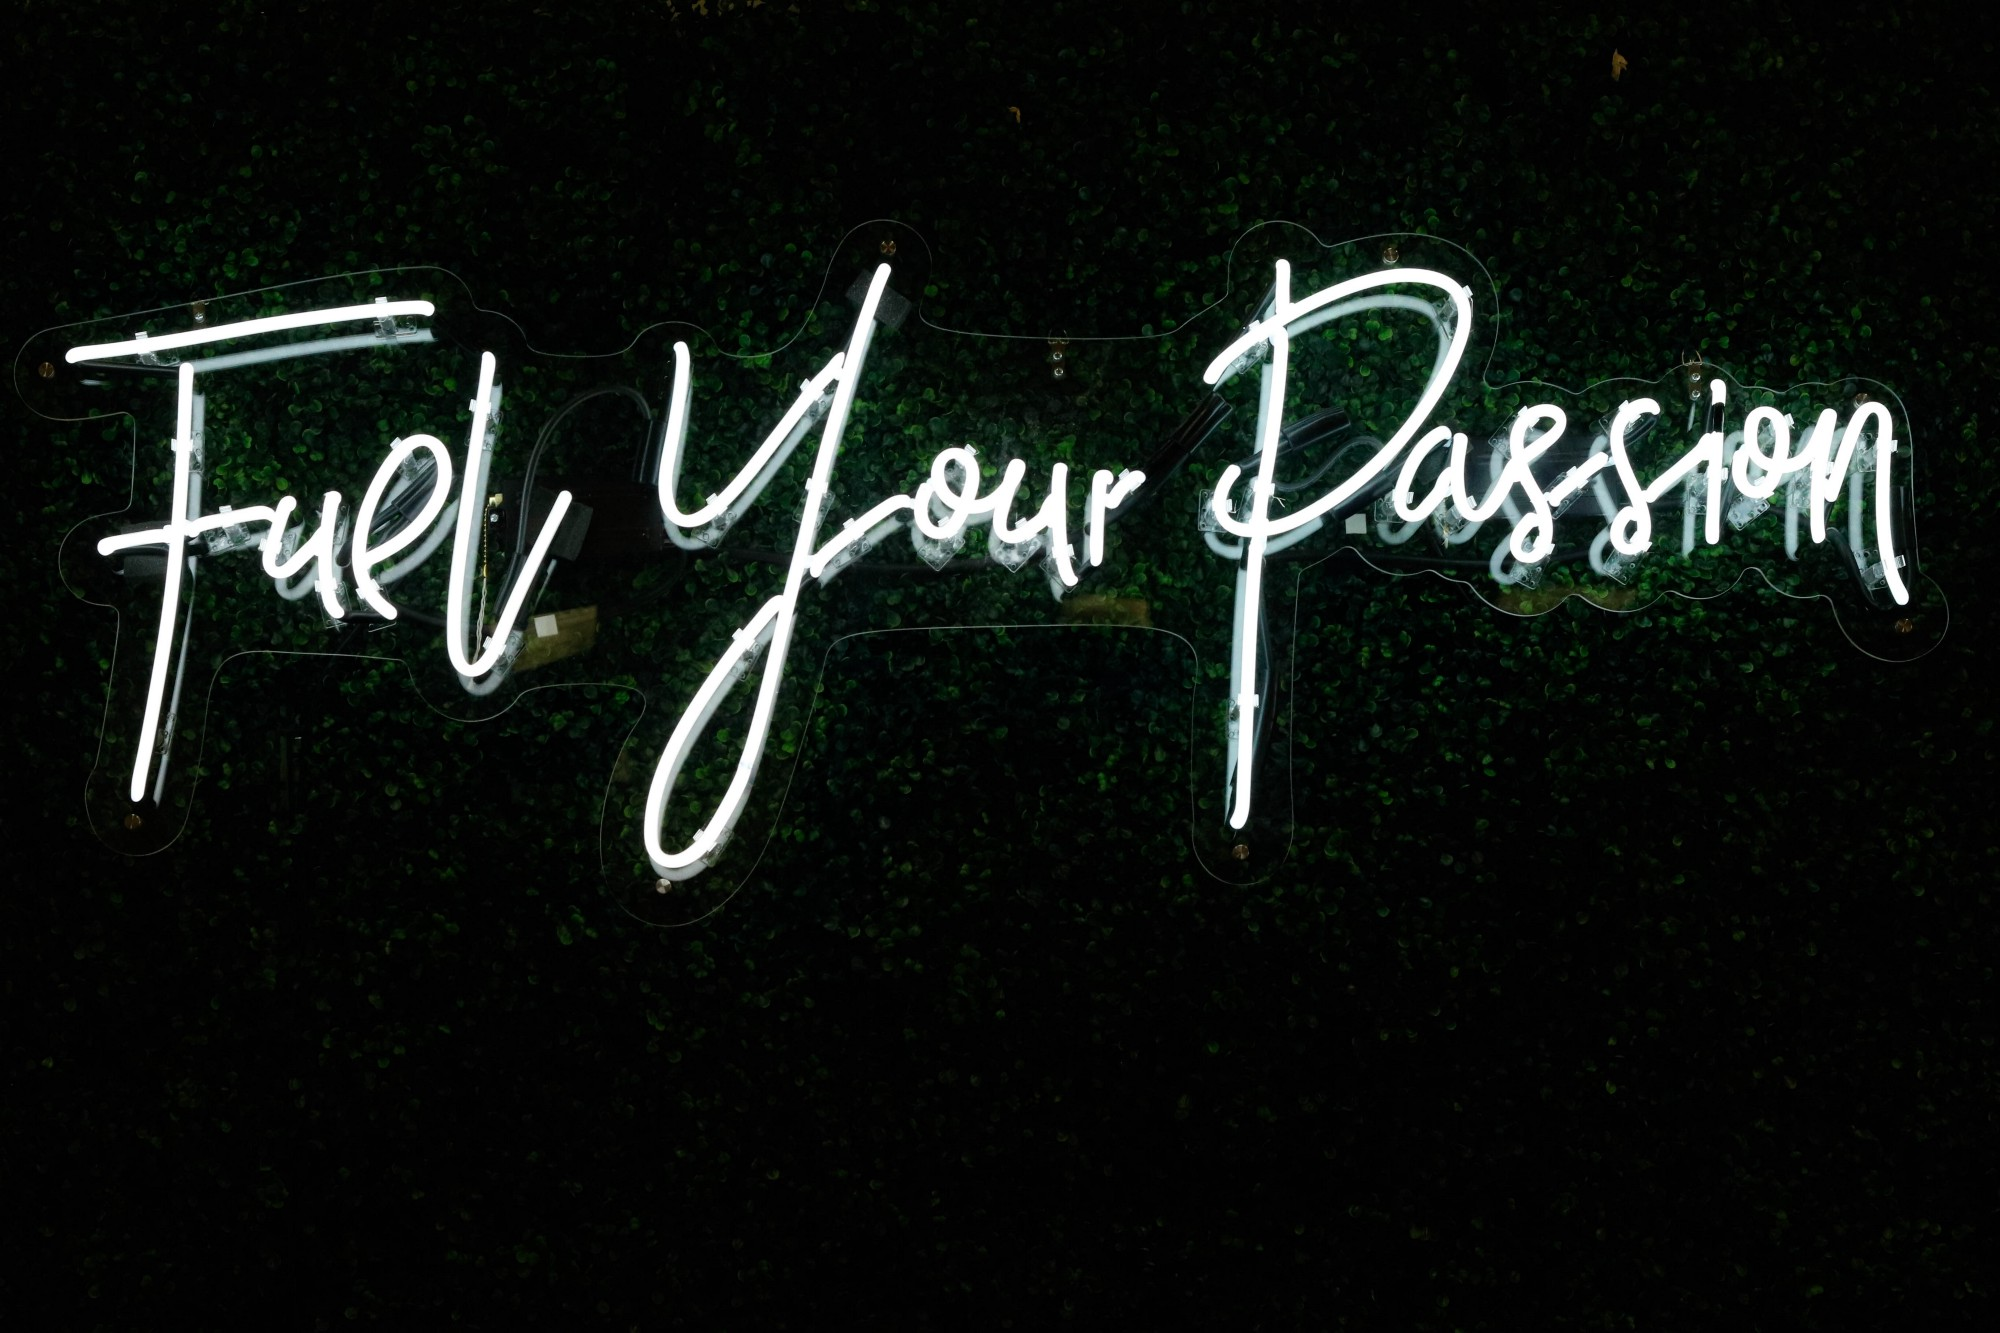 Neon sign in cursive writing in white lights that says Fuel Your Passion on black background.